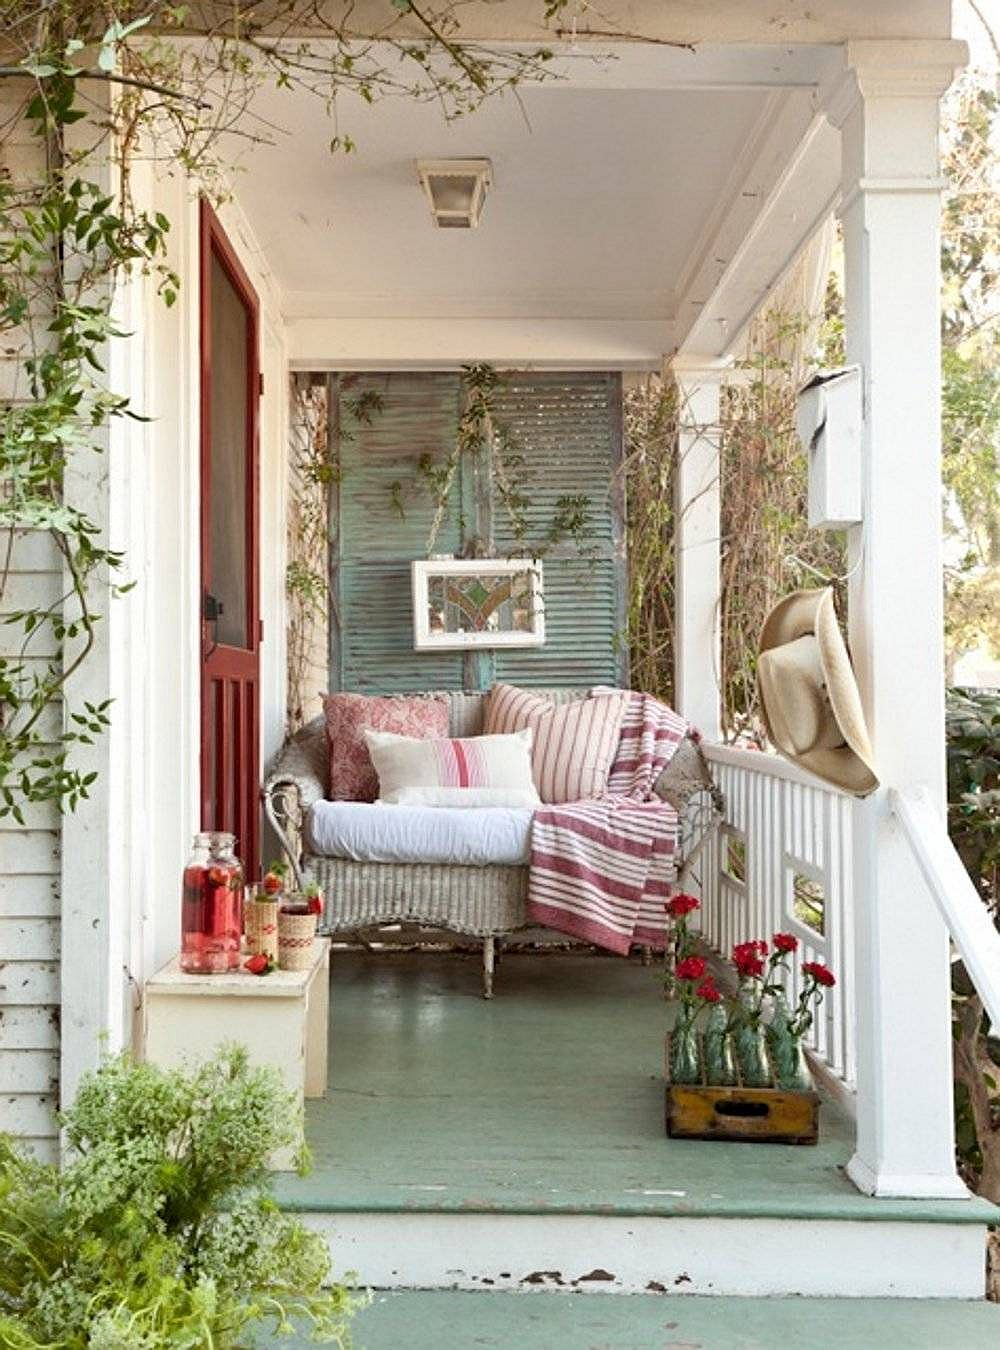 Timeless vintage charm is captured in a picture-perfect manner by this small porch